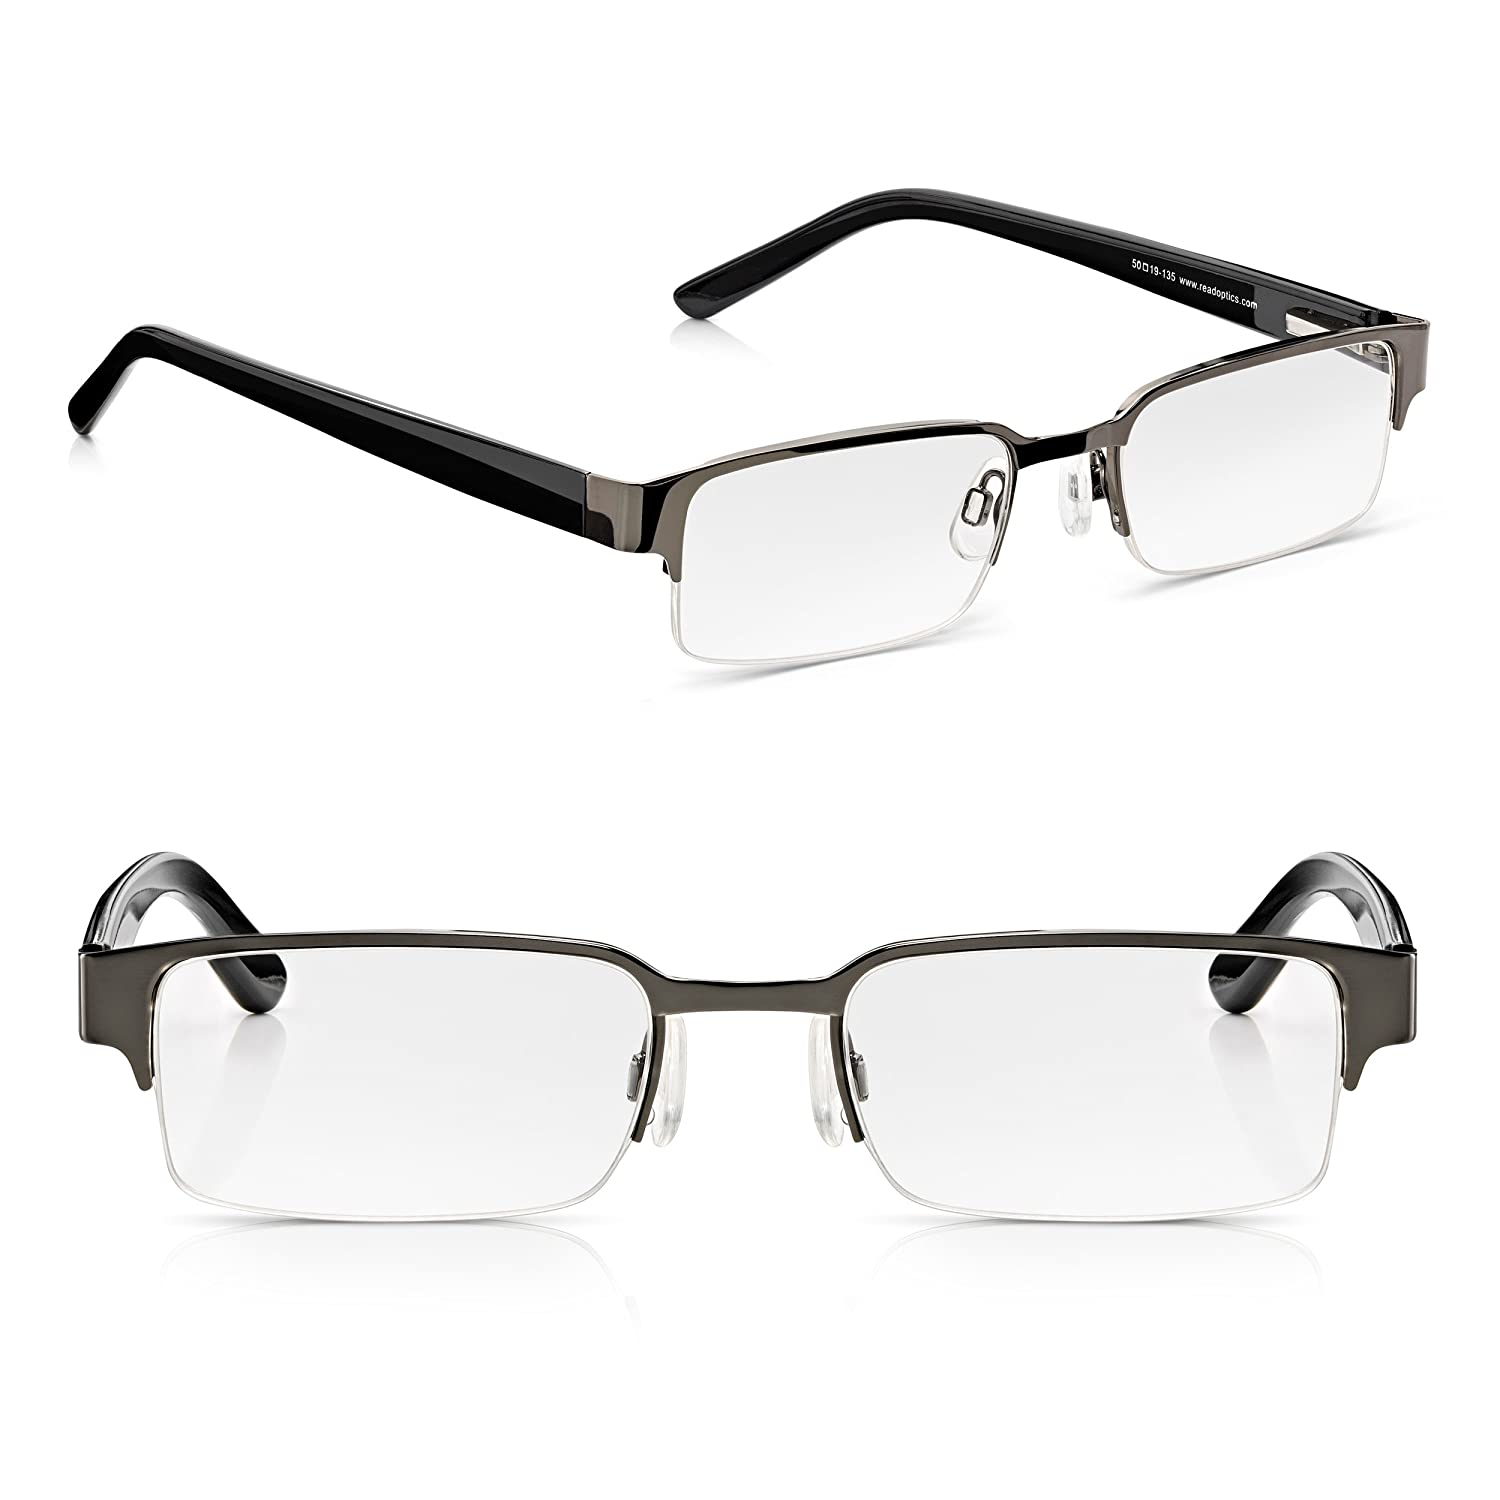 4724204e04ba Read Optics 2 Pack Black Half Frame Reading Glasses: Mens Retro Ready  Readers with Spring Hinges. Semi Rimless Optical Quality Computer Screen +  General ...